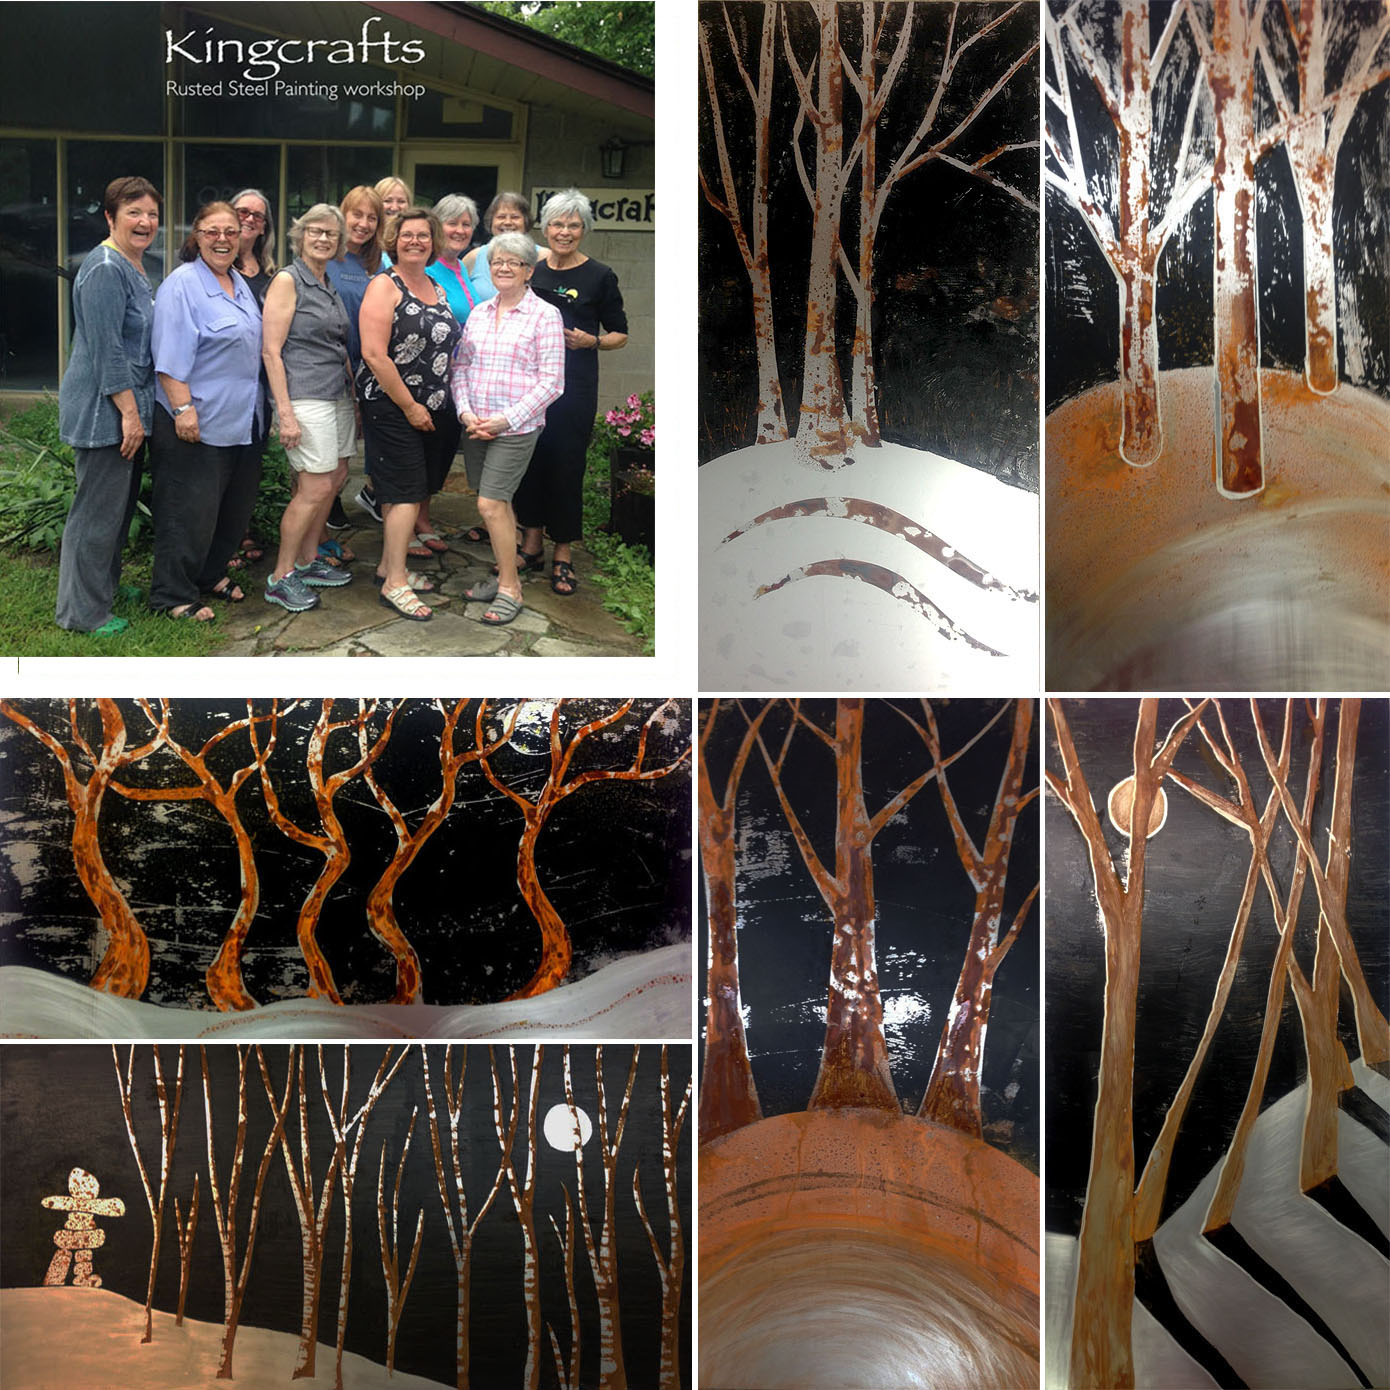 Spent a fun day playing with a lovely group of creative souls at the Kingcrafts studio where we applied a rust solution onto steel plates using various tools and techniques. Here are some of the great results that were achieved.